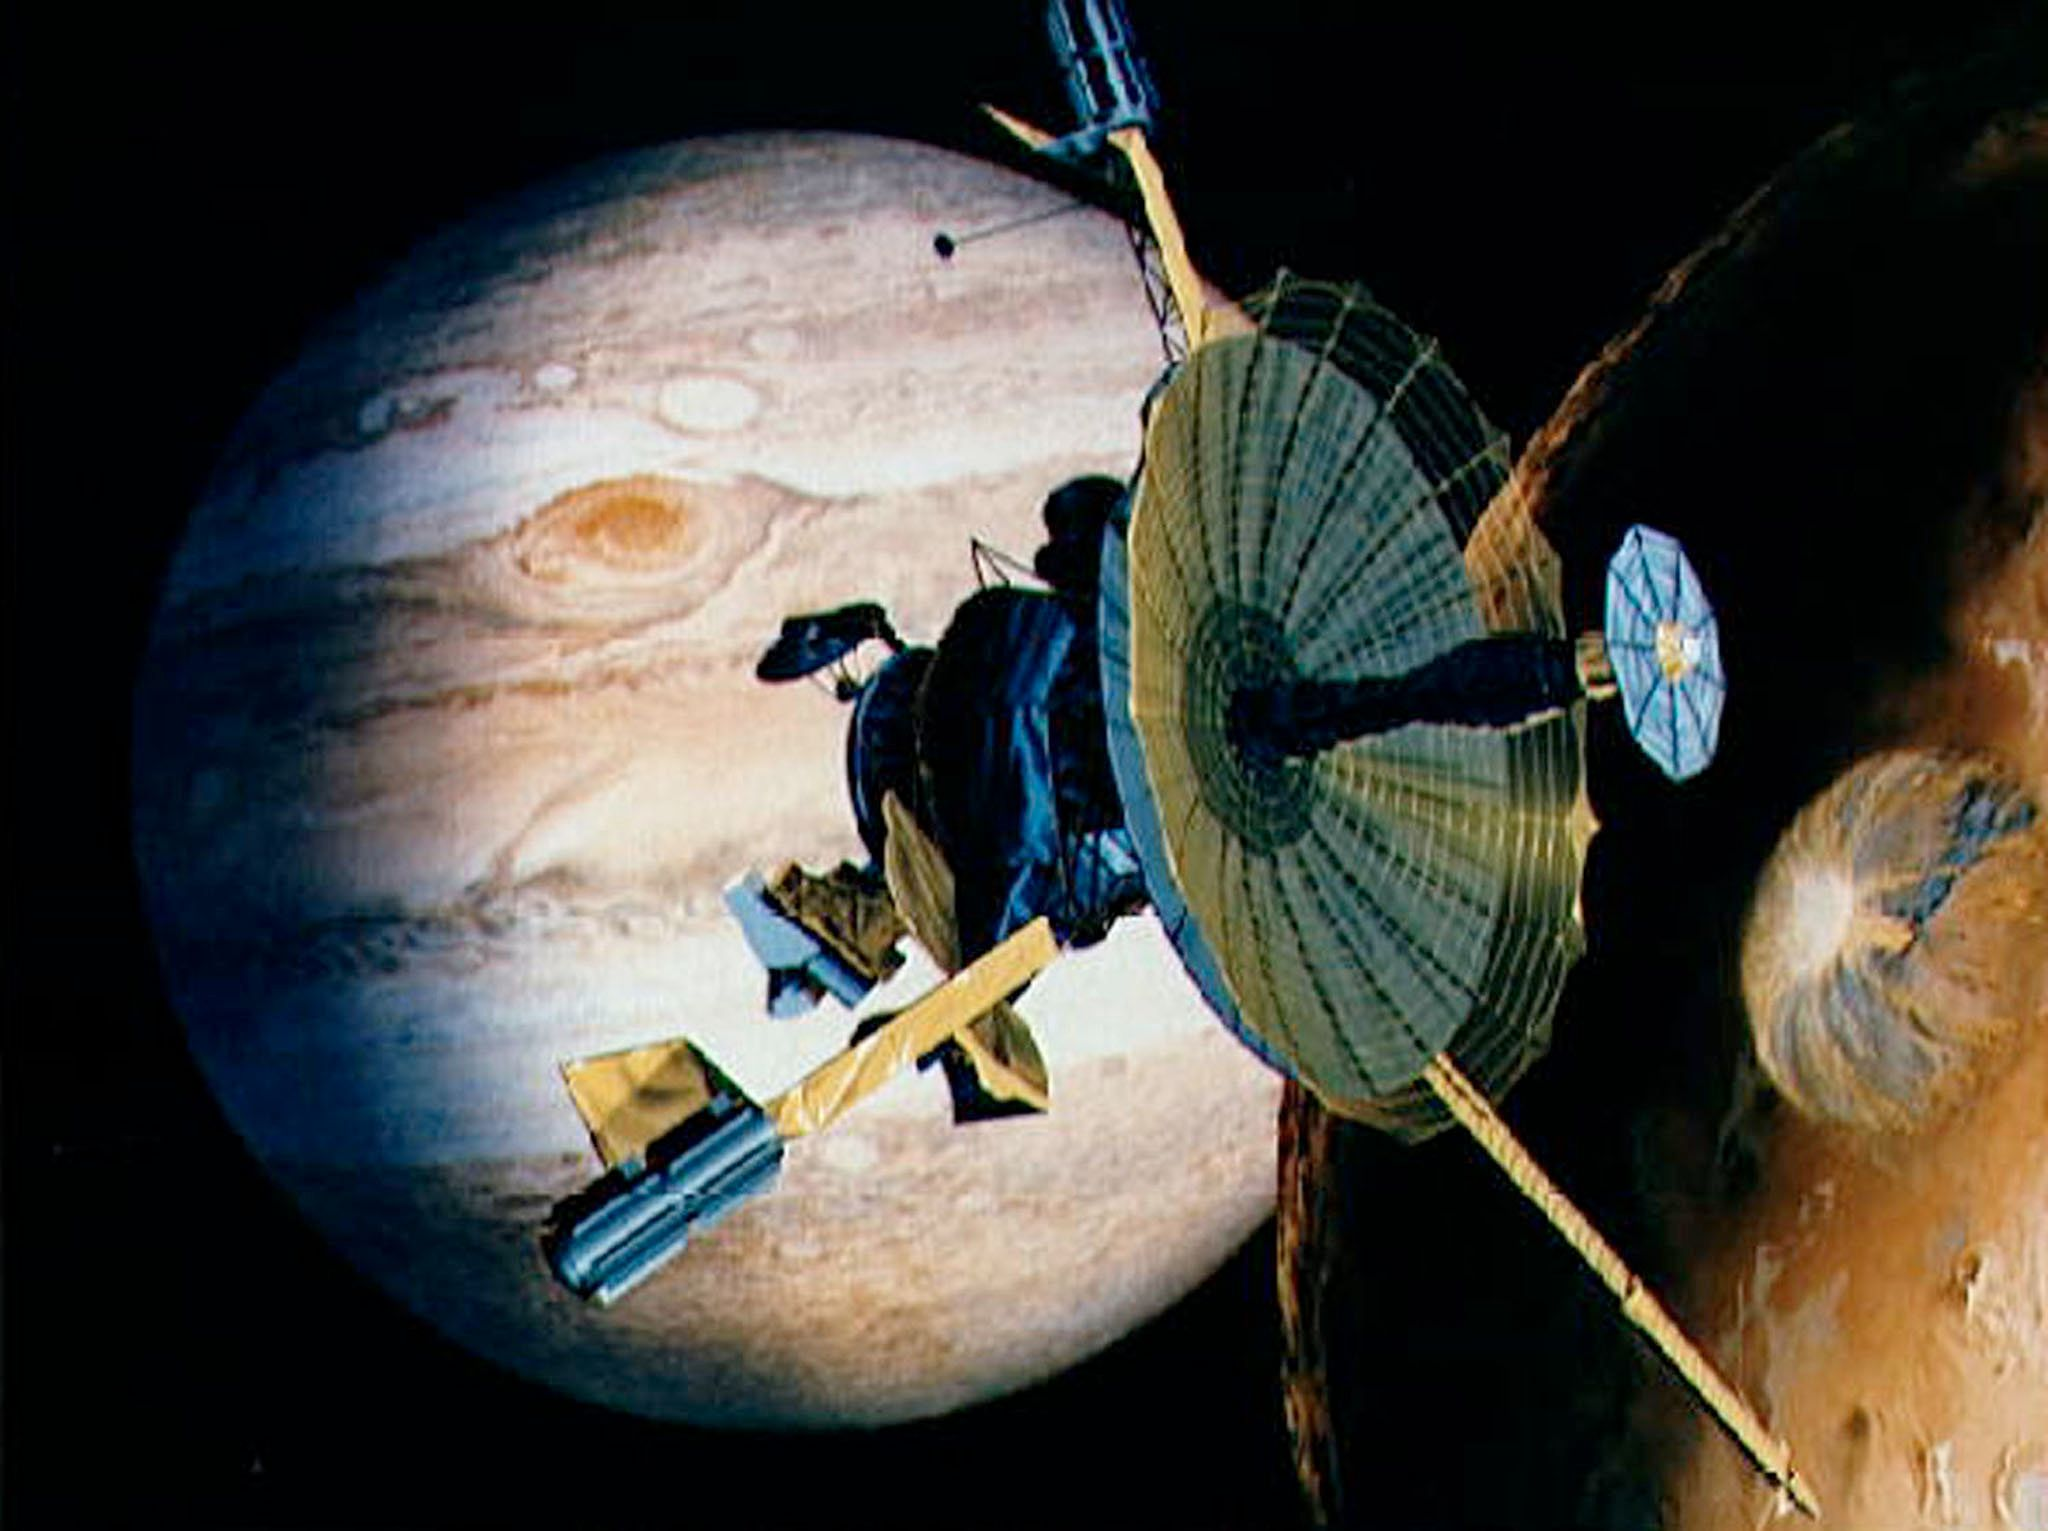 UNDATED PHOTO - NASA's veteran space traveler Galileo, shown nearing Jupiter in this artist's rendering, will team up with space newcomer Cassini for the first-ever joint observation of a planet by two spacecraft, the U.S. space agency said on March 9. Launched in 1989, the craft arrived at Jupiter in 1995 for a two-year mission that was supposed to end in December 1997, but has now been extended at least until the end of this year.  RC/JP